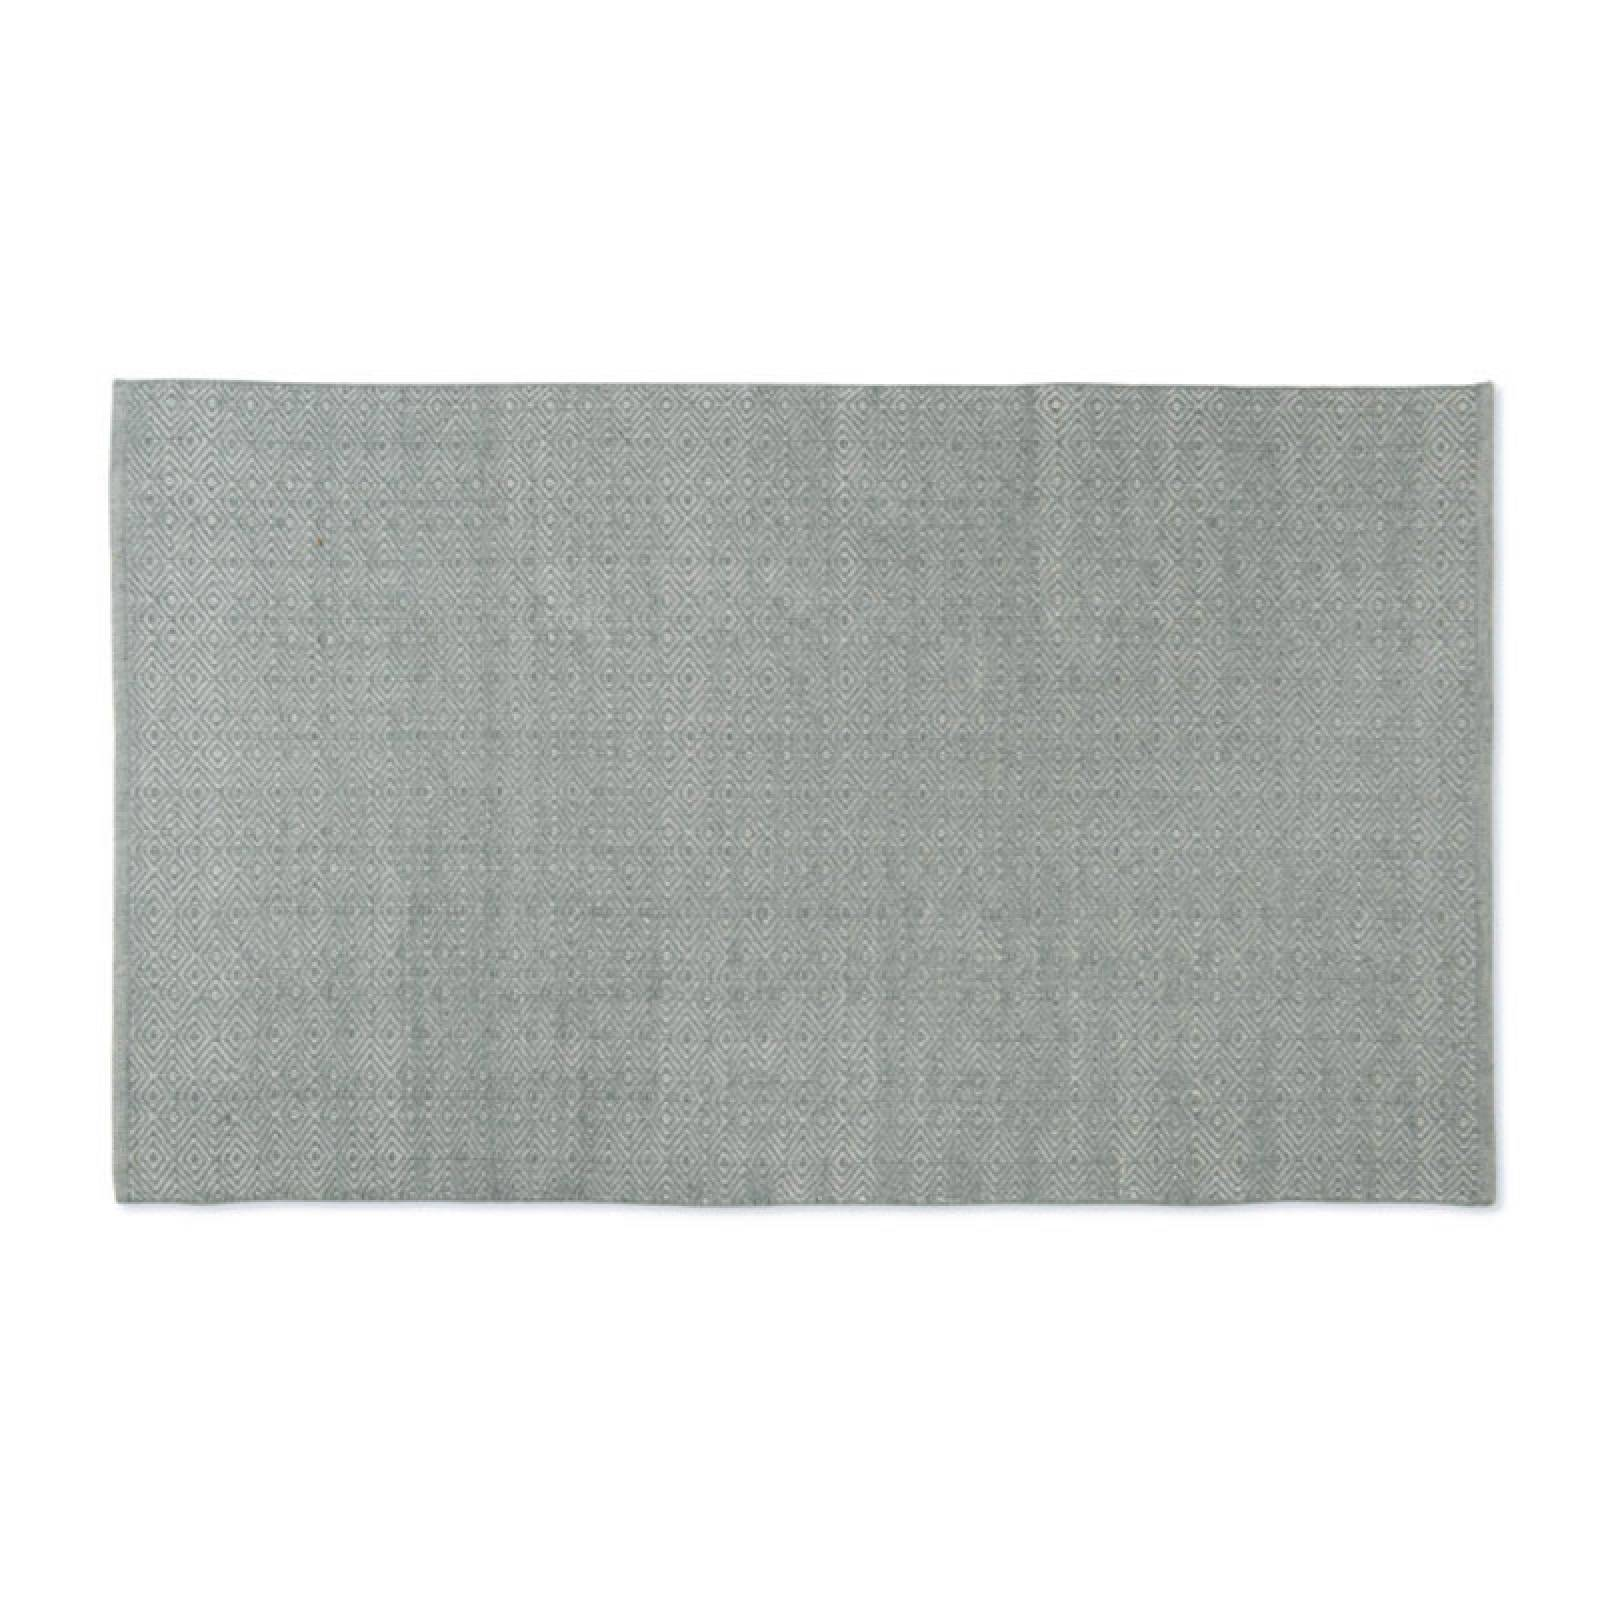 Diamond GREY 150x90cm Recycled Bottle Rug thumbnails